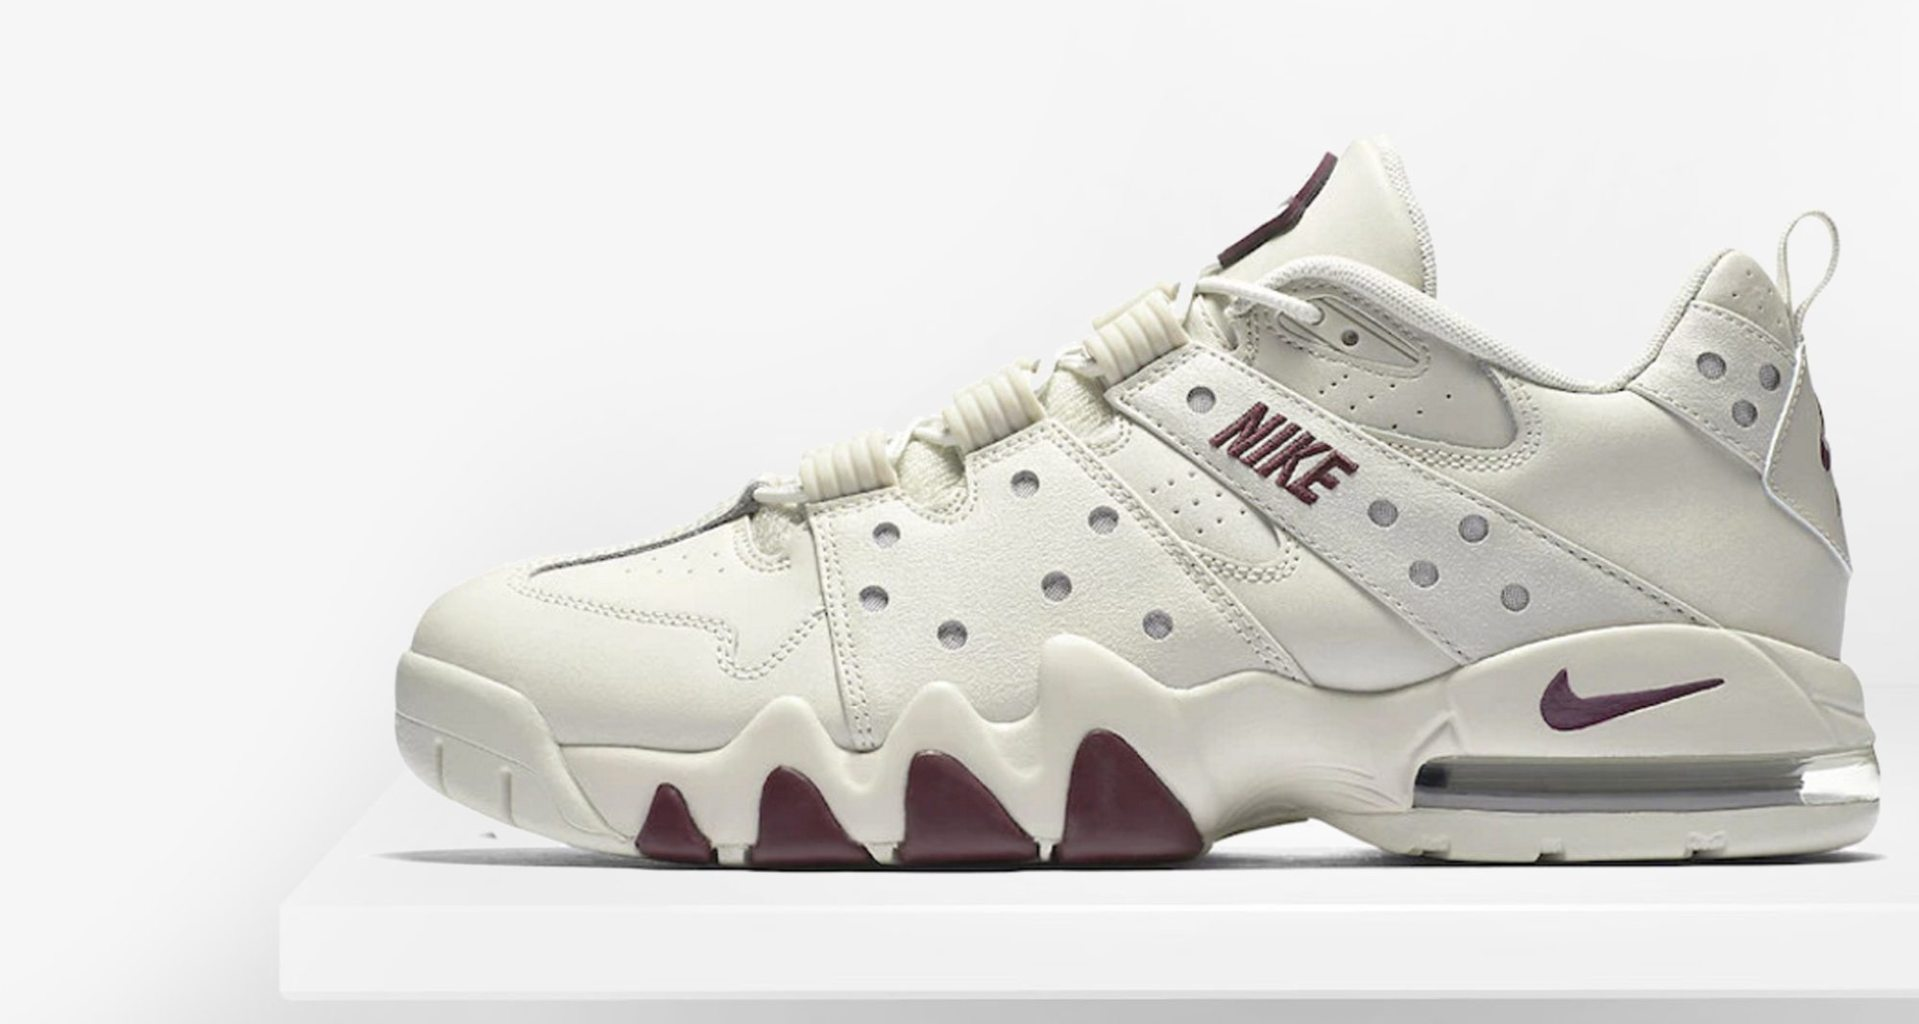 plus récent 15624 69f6a Nike Air Max CB 94 Low